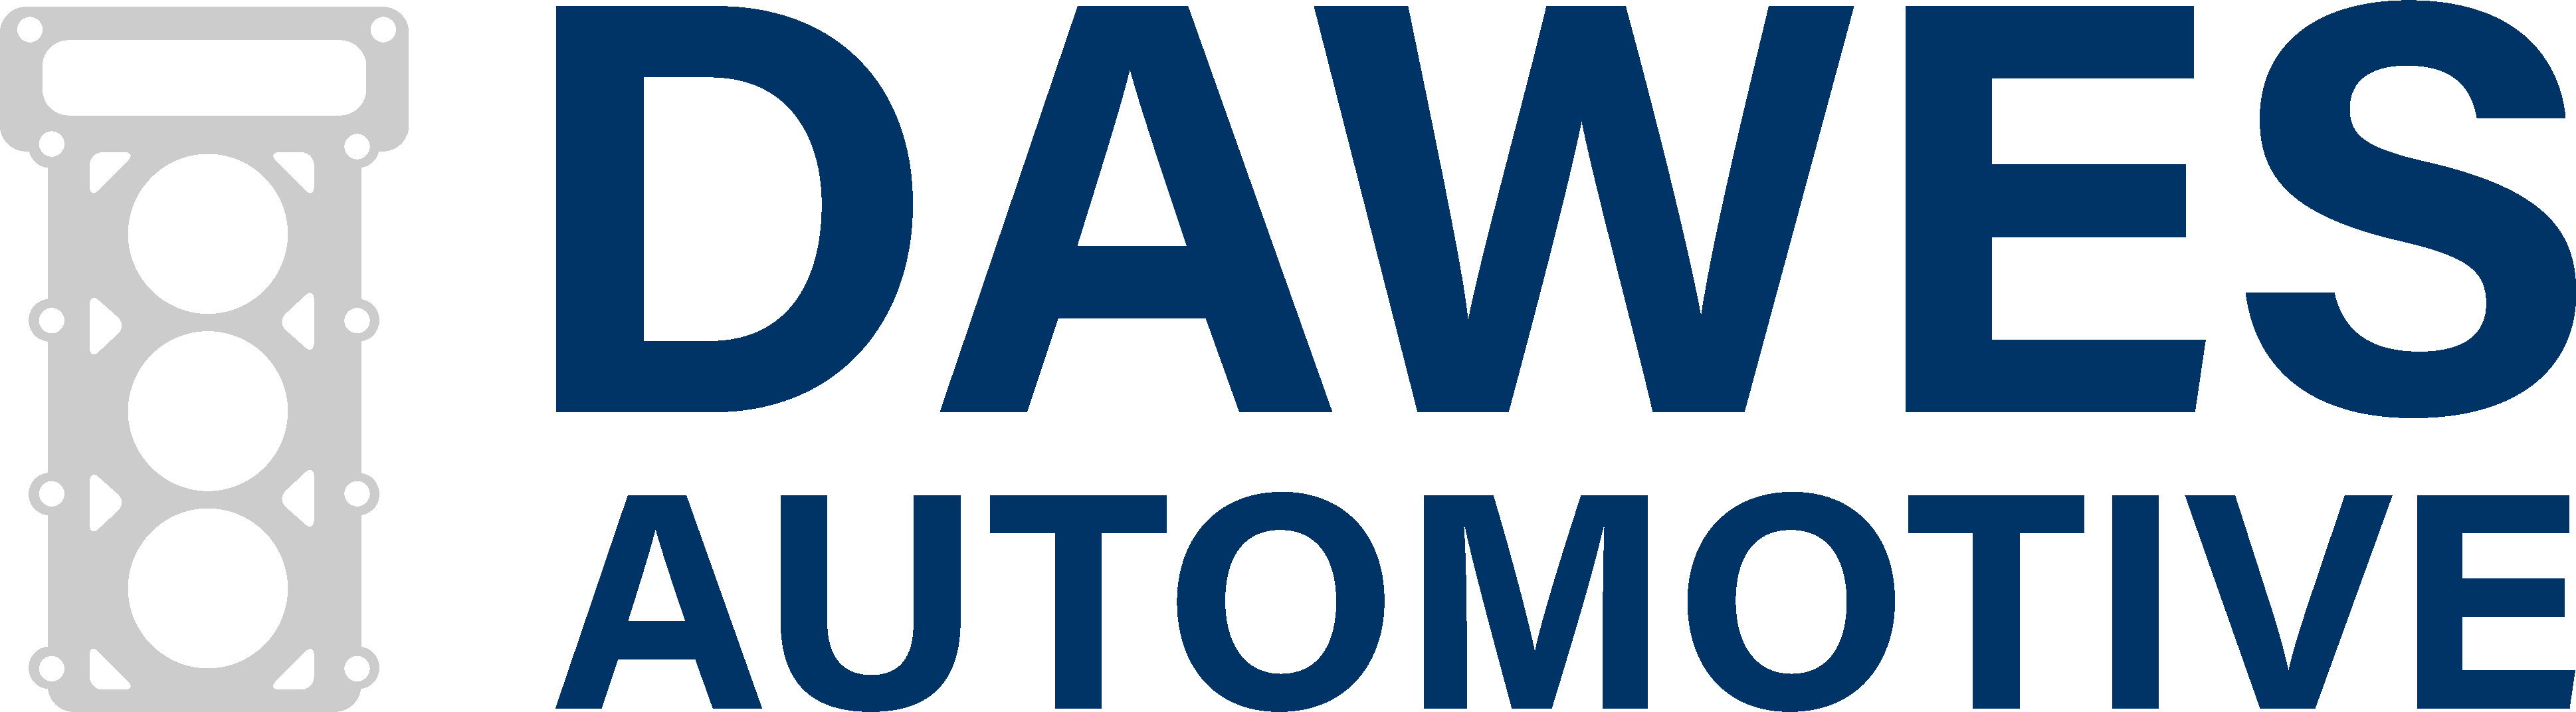 dawes automotive logo